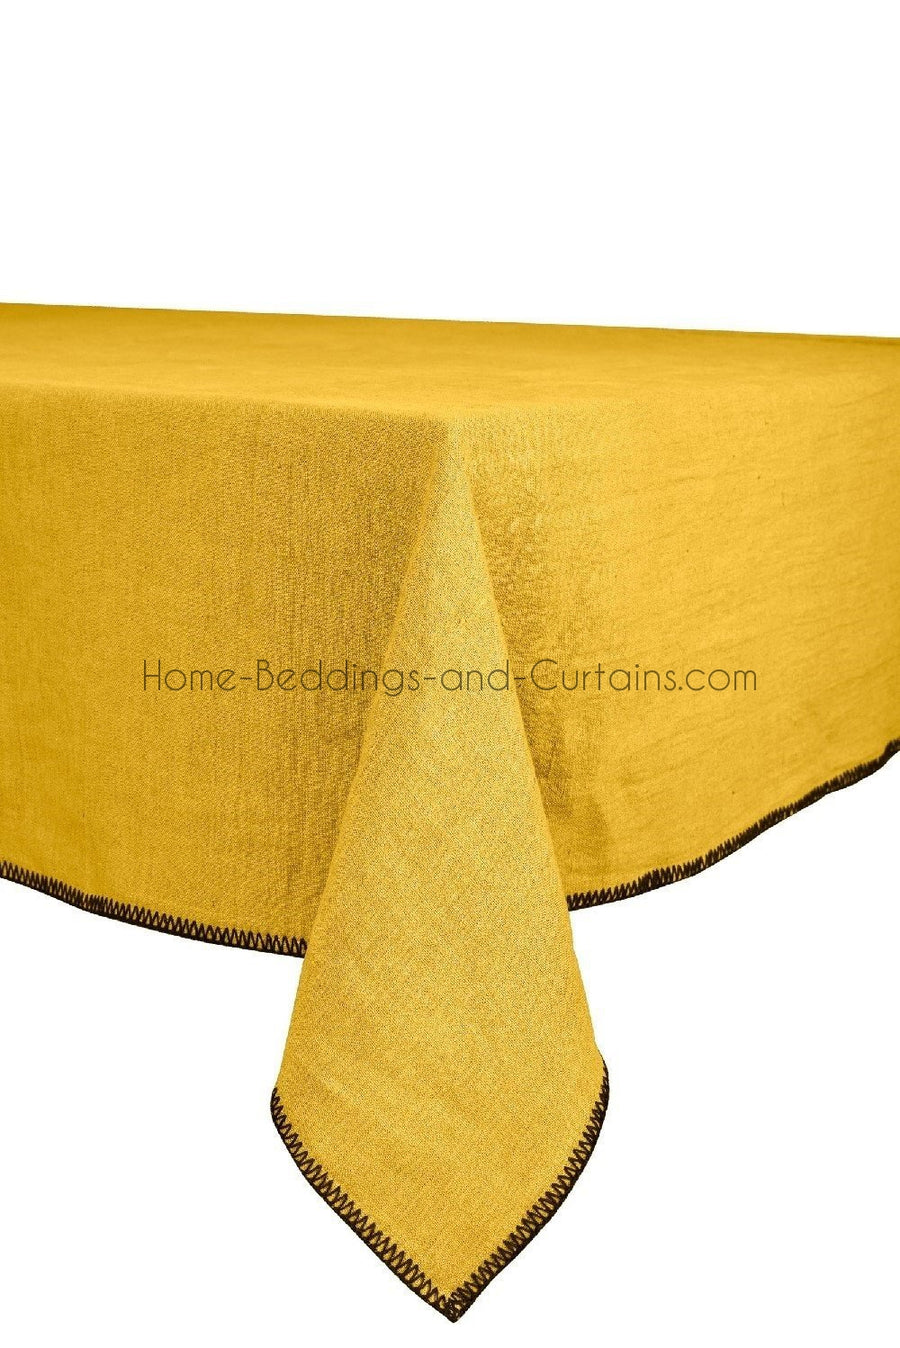 Harmony - Serviette en lin lavé carrée Letia - Jaune Absynthe - 41x41 cm - Home Beddings and Curtains